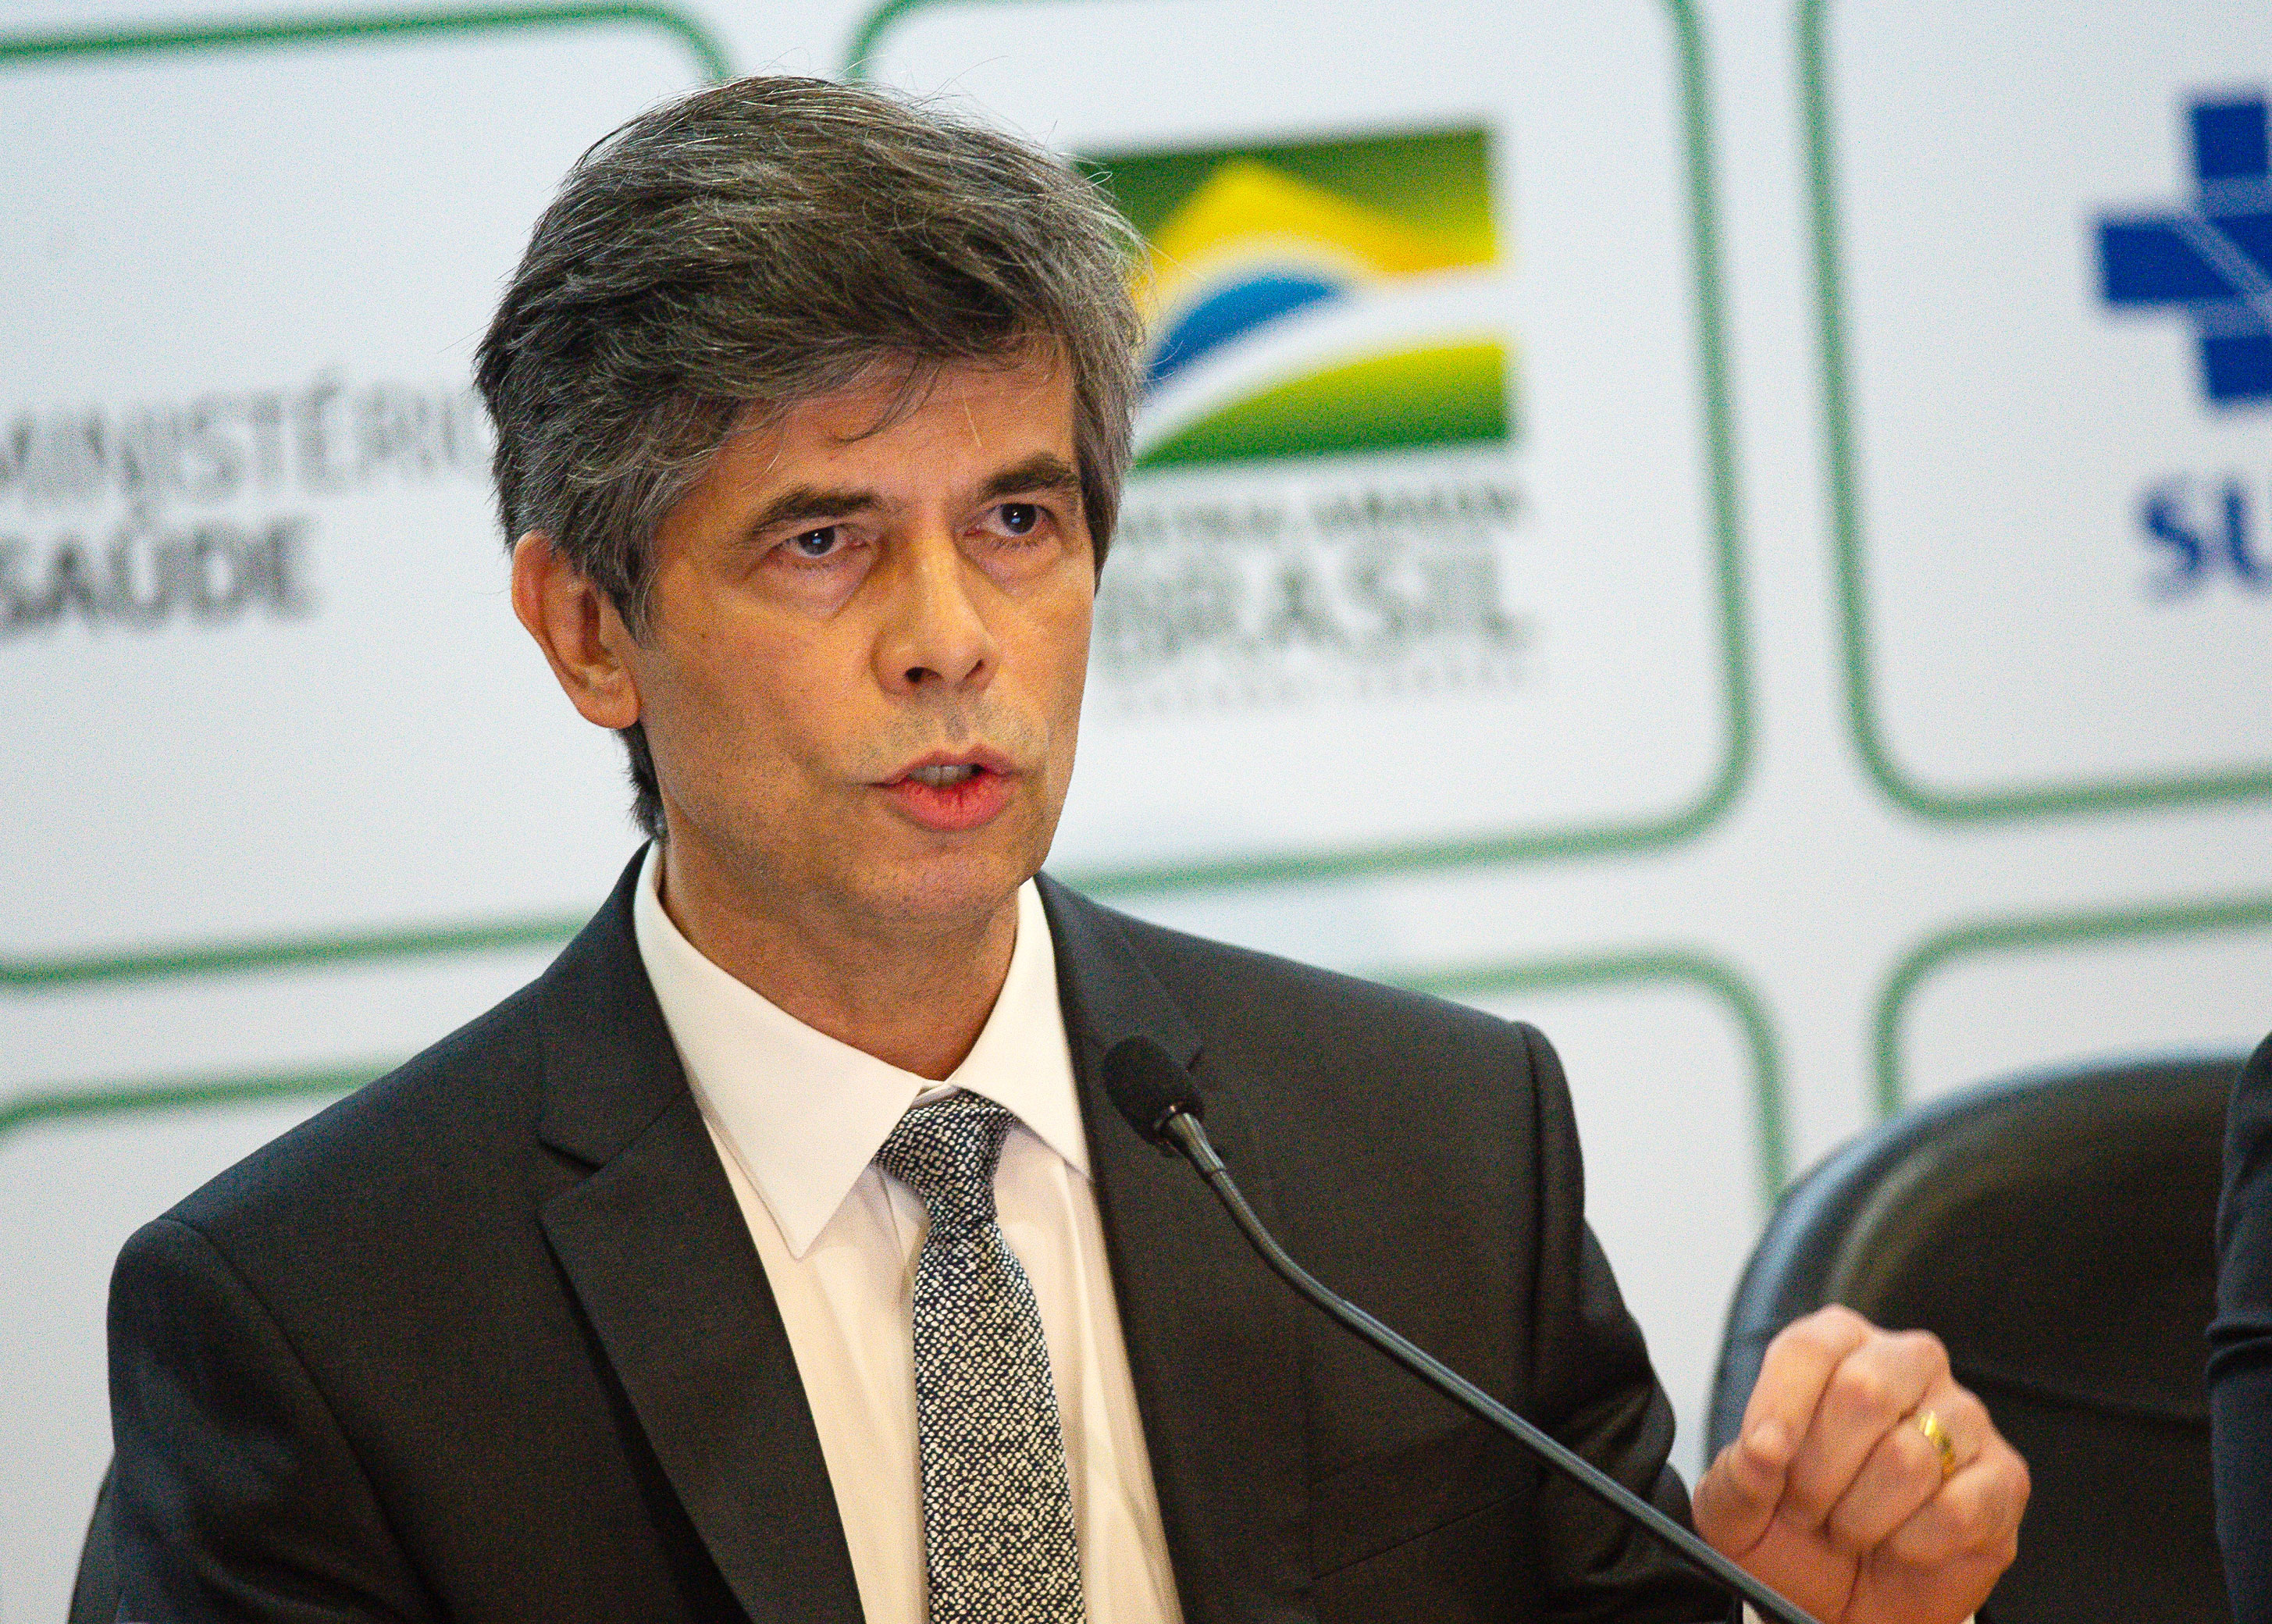 Former Brazilian Health Minister Nelson Teich announces his resignation during a press conference on May 15 in Brasilia, Brazil.